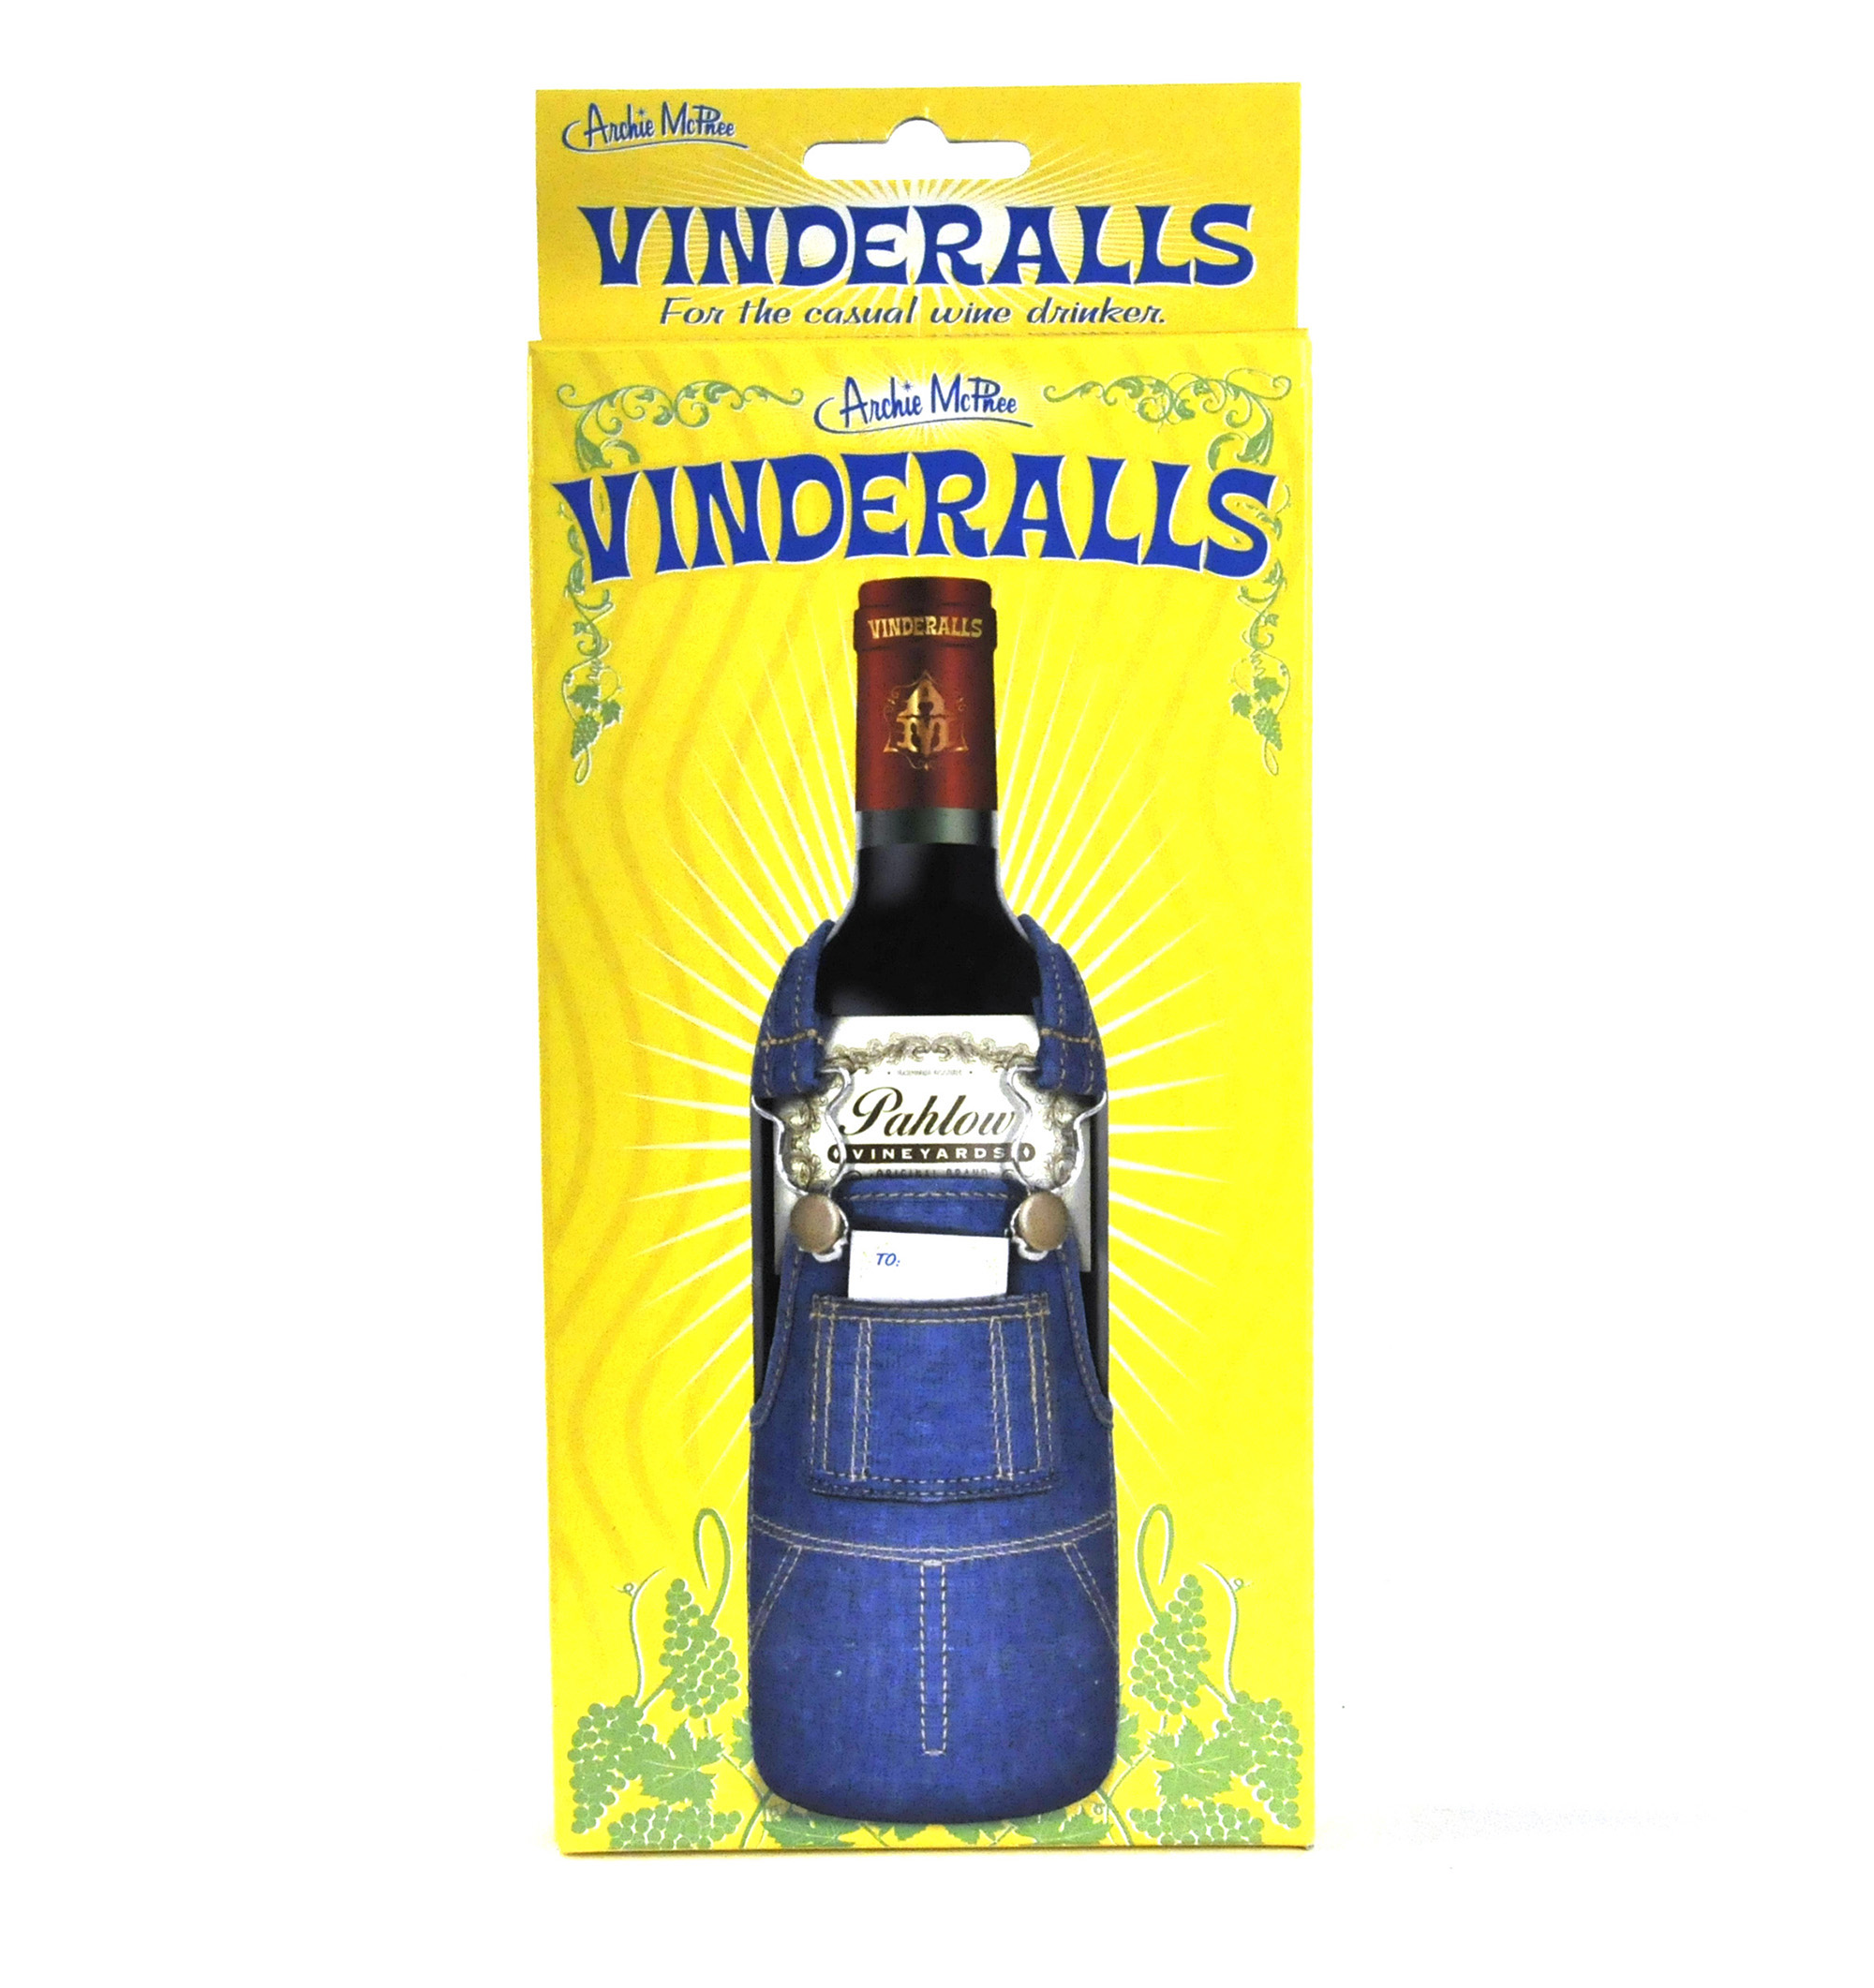 Home Bars For The Casual Drinkers: Dungarees For Casual Wine